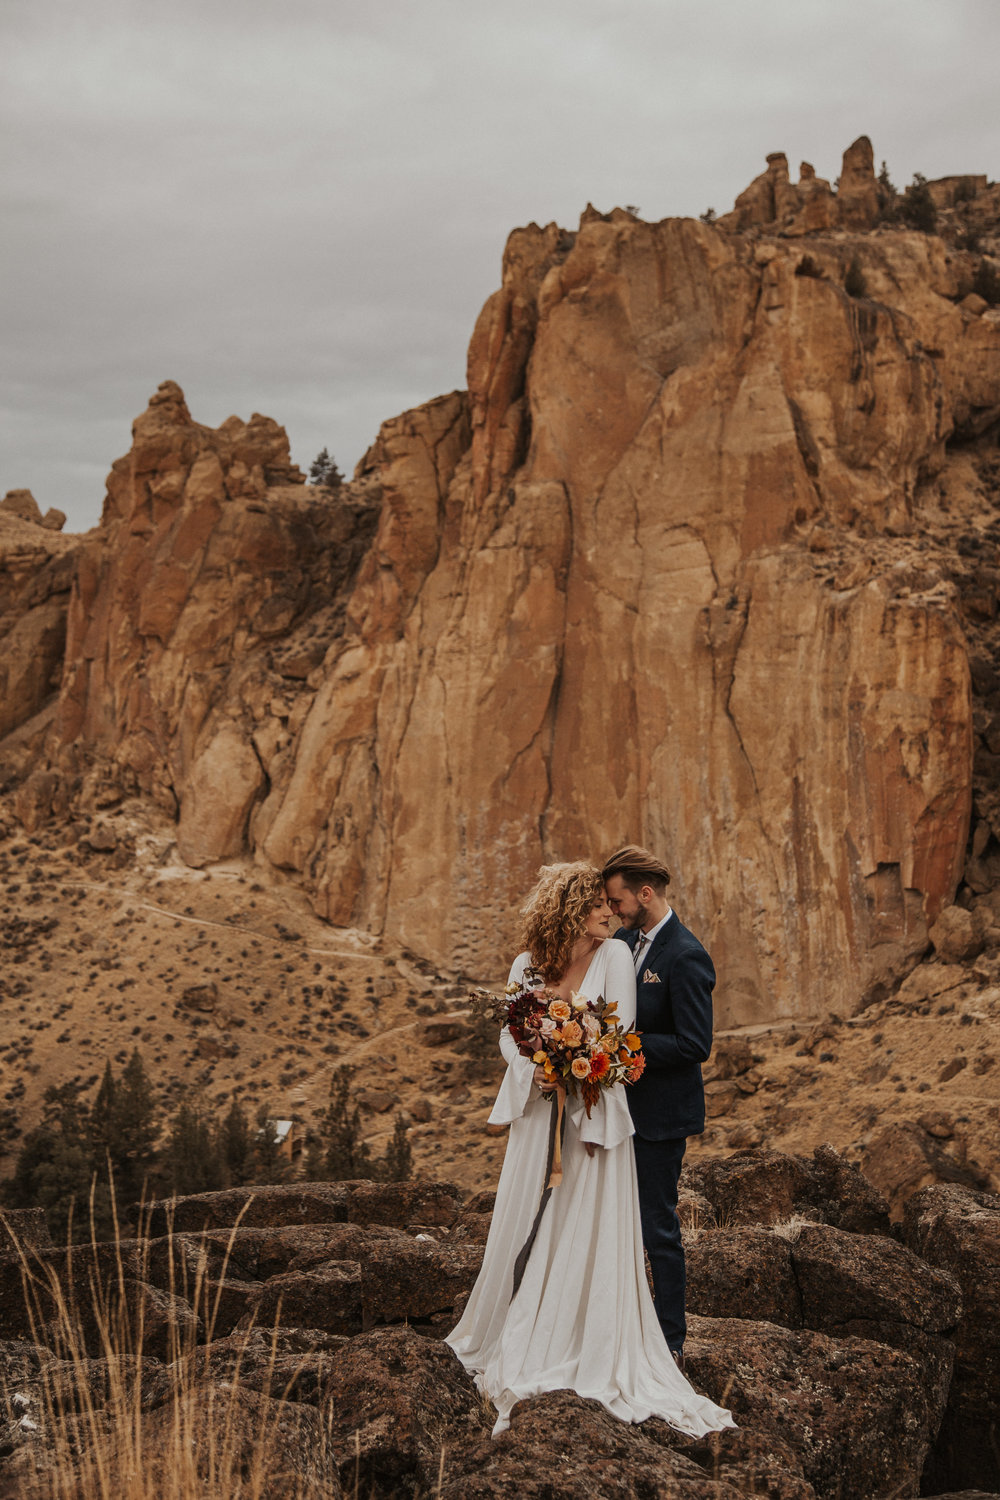 August-muse-images-smith-rock-elopement-oregon-bri-dylan-17.jpg